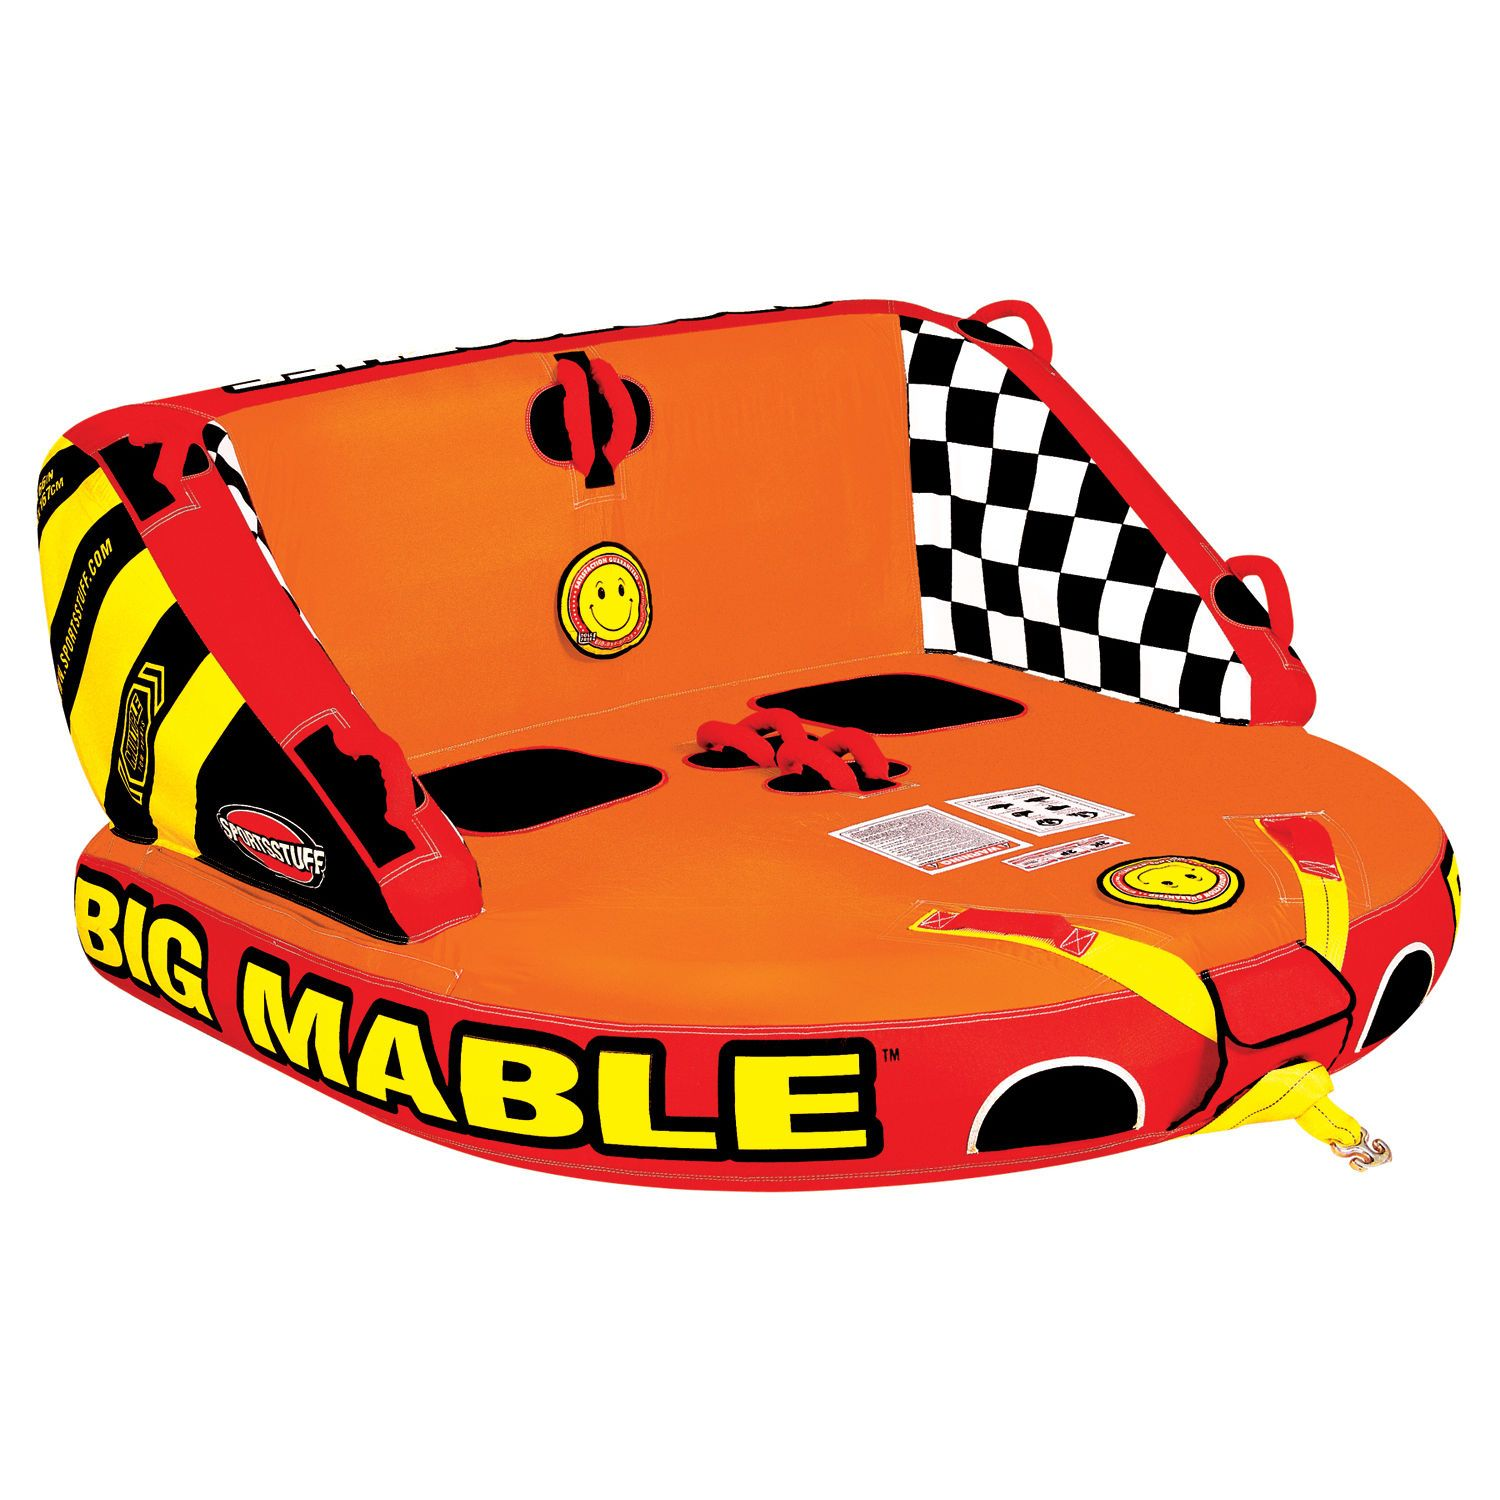 Cool Sportsstuff Inflatable Big Mable Sitting Double Rider Towable Tow Harness For Towables Boat And Lake Tube Check More At Http Harmonisproductioncom